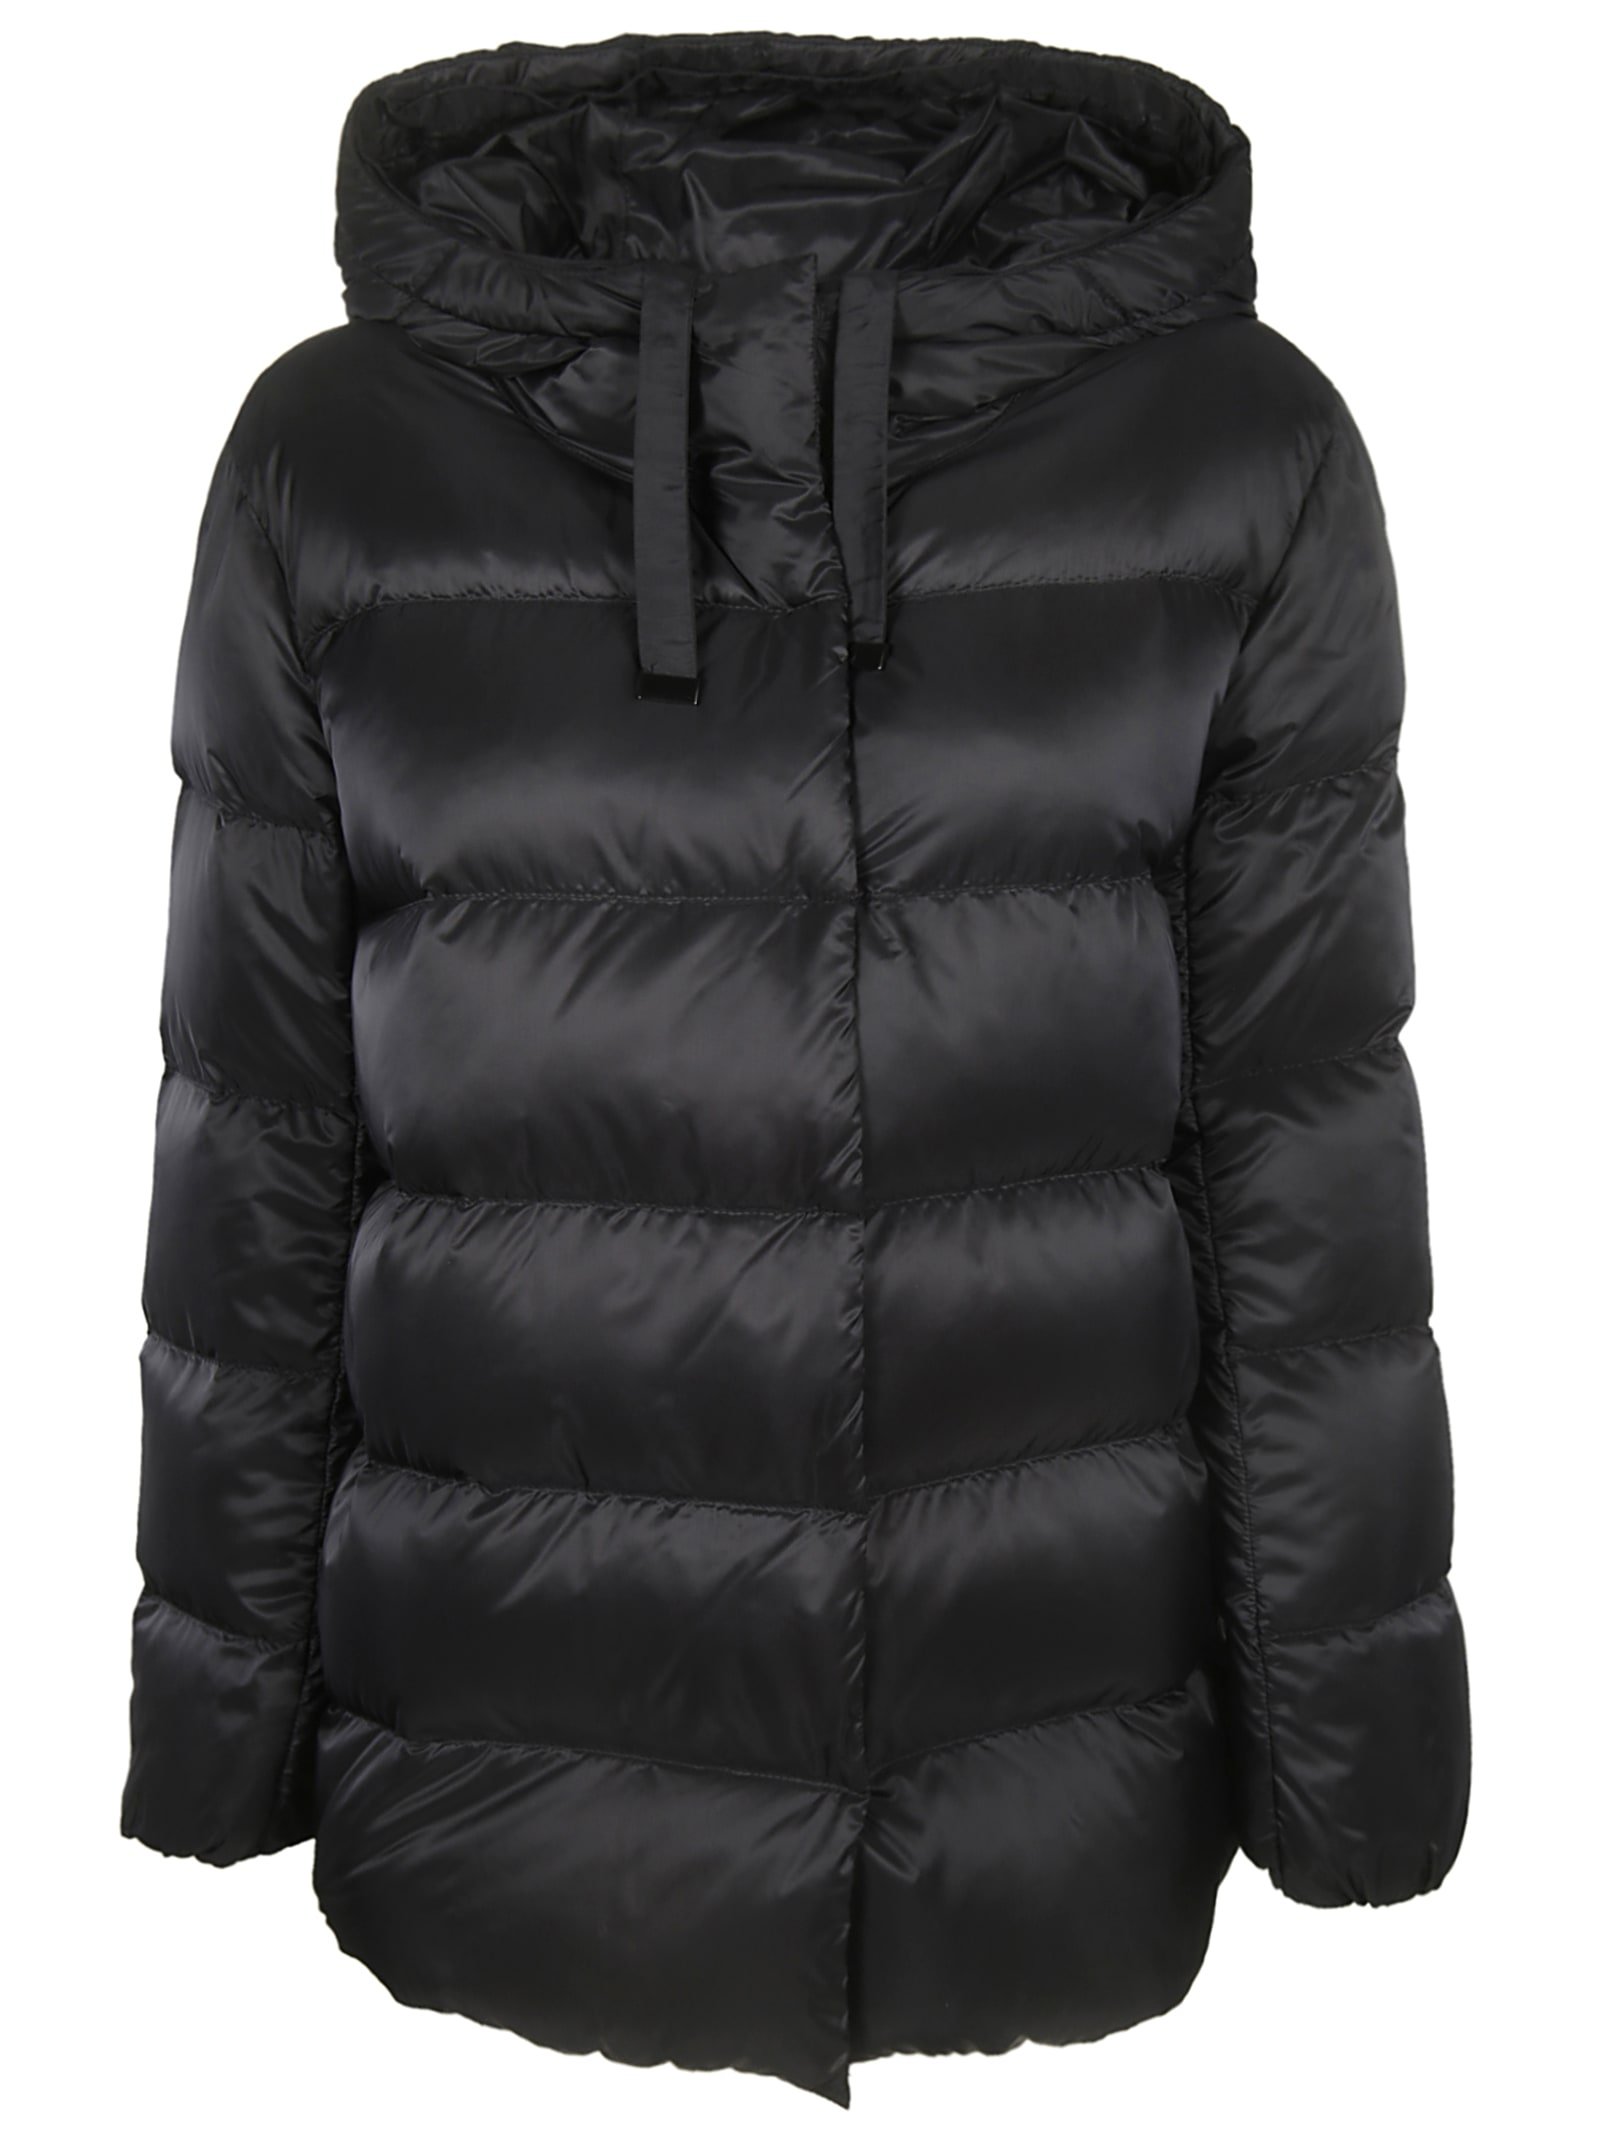 Max Mara Large Hood Padded Jacket